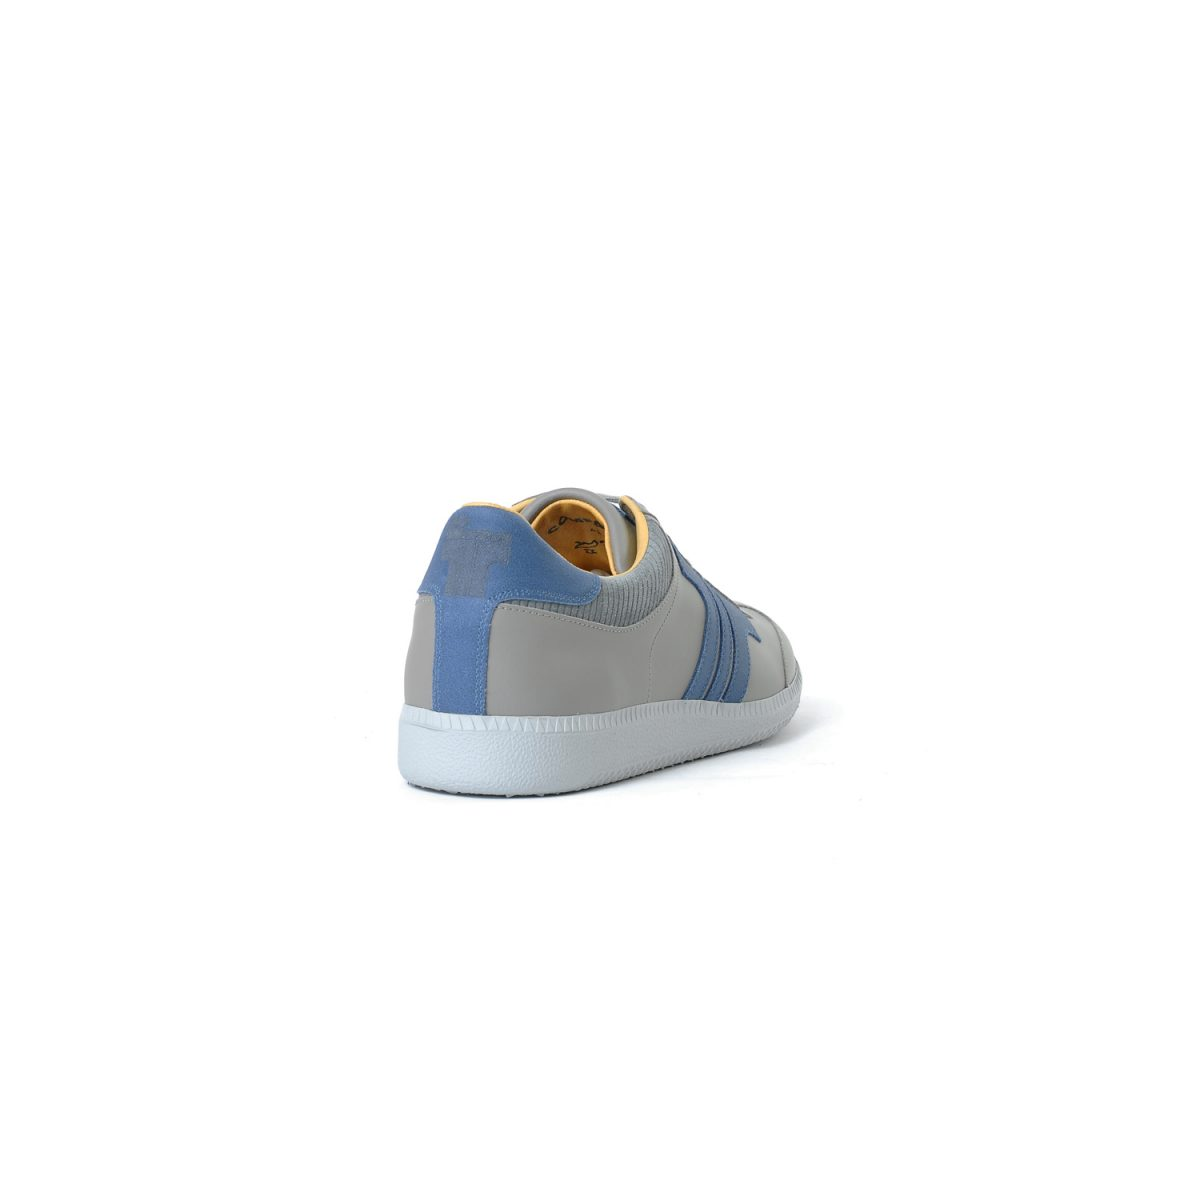 Tisza shoes - Compakt - Grey-blue-cord